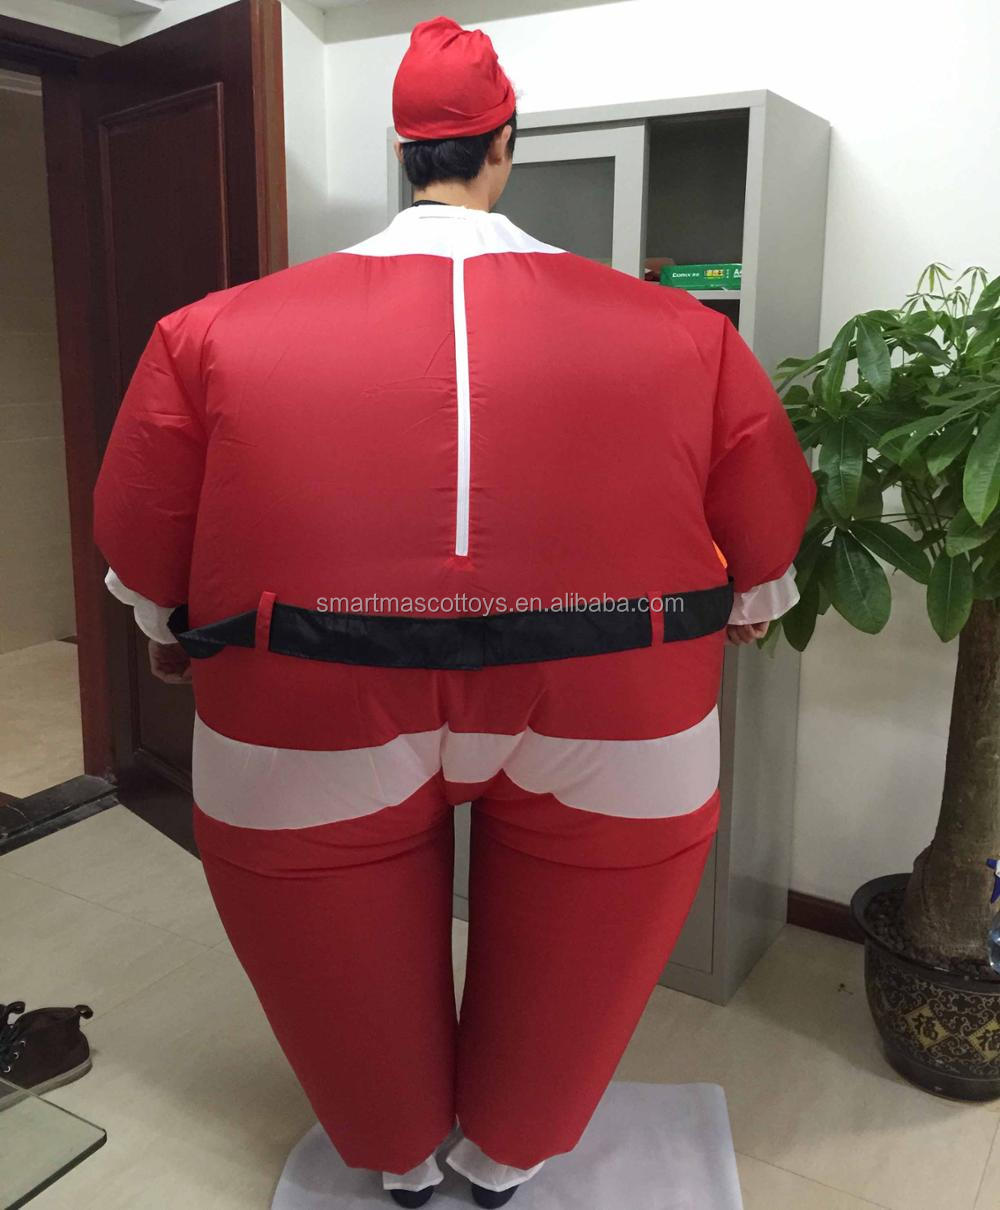 Waterproof inflatable santa claus christmas mascot costume